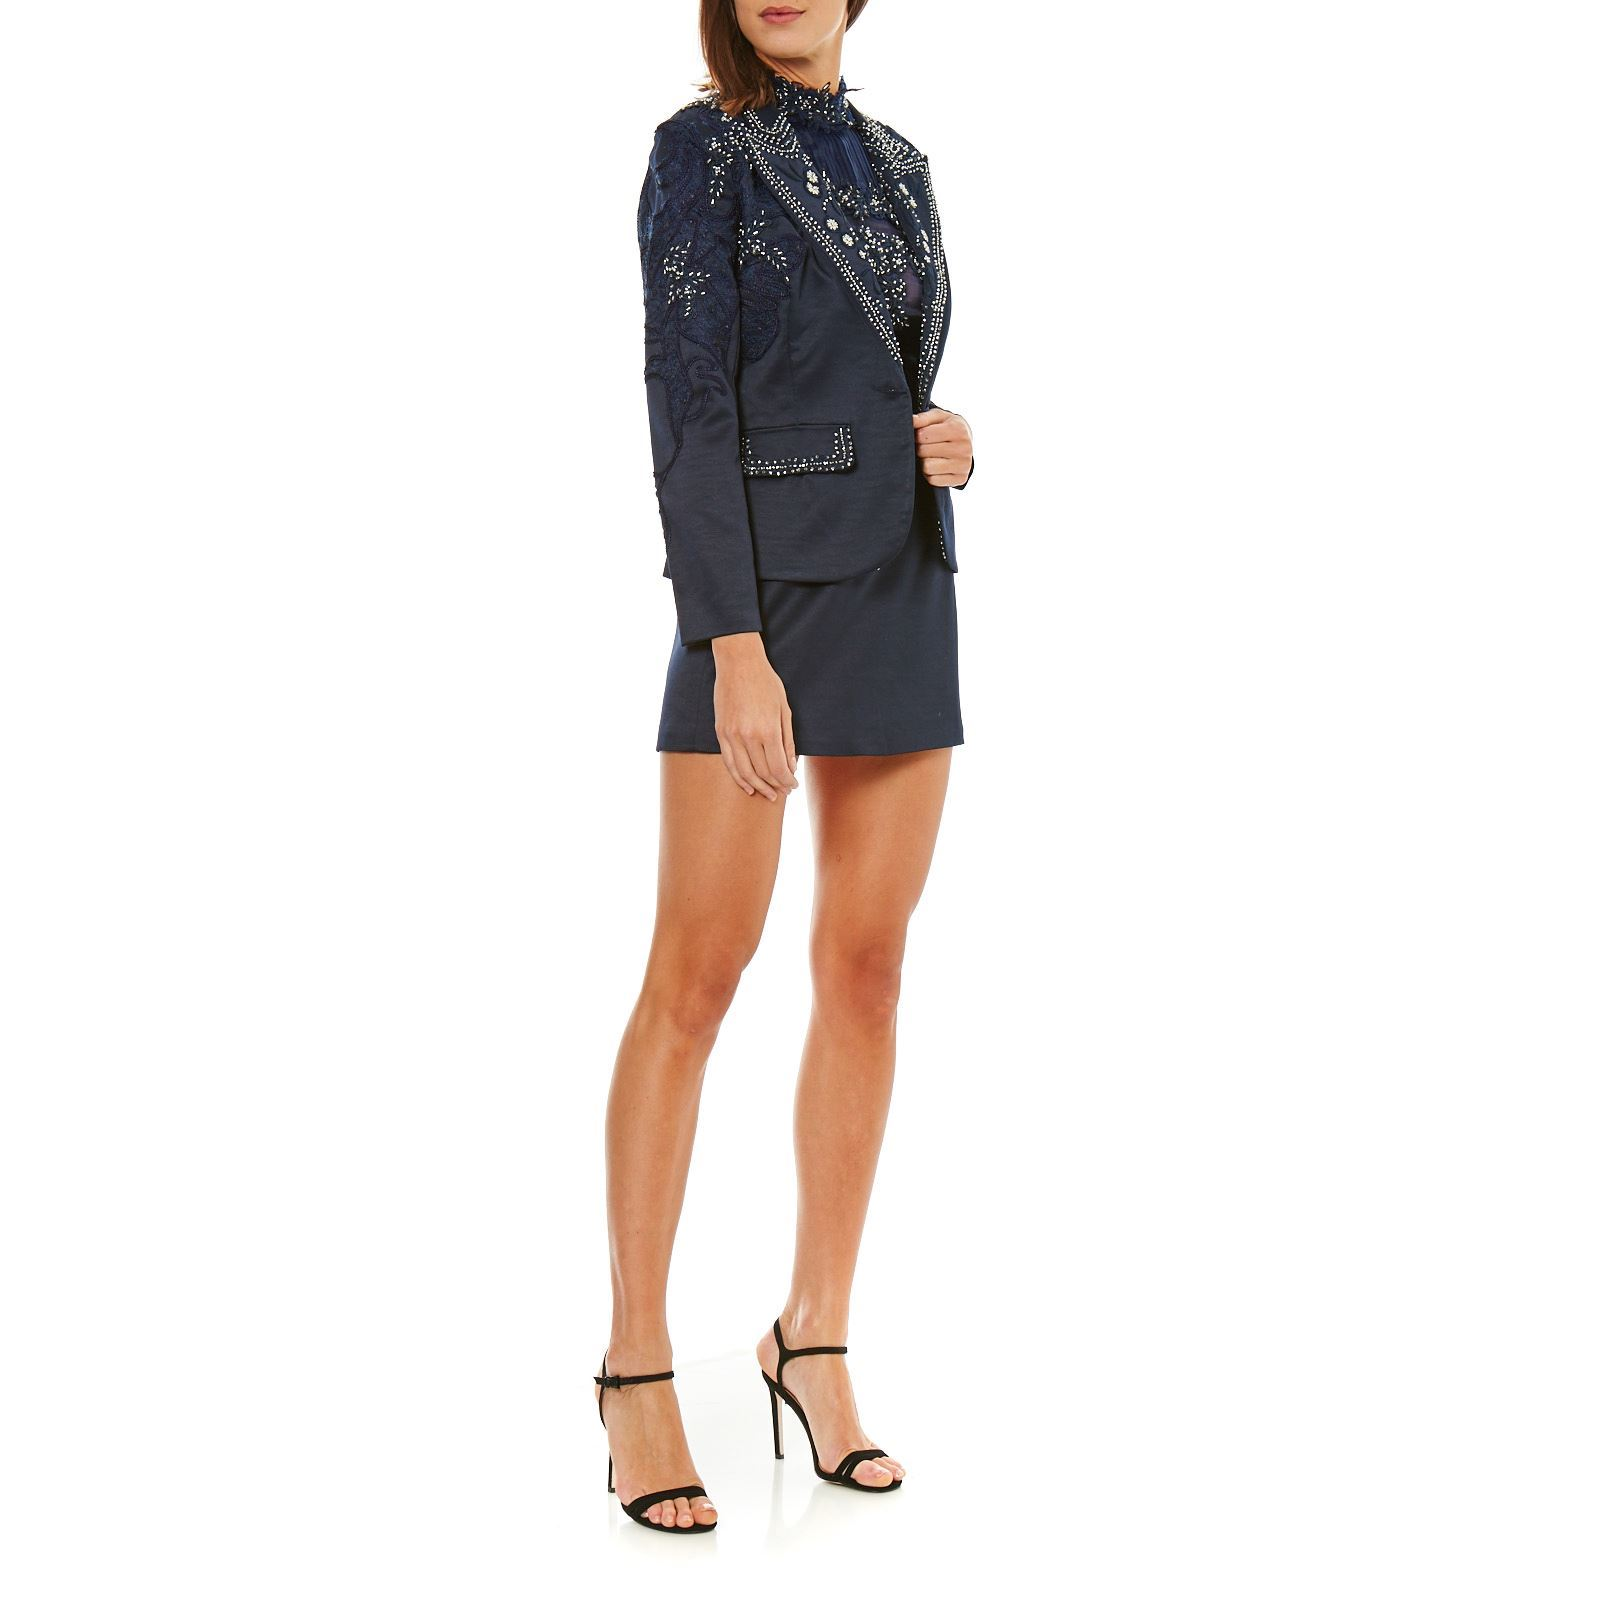 Faust Completo tailleur - donna - blu scuro  6d37863d624